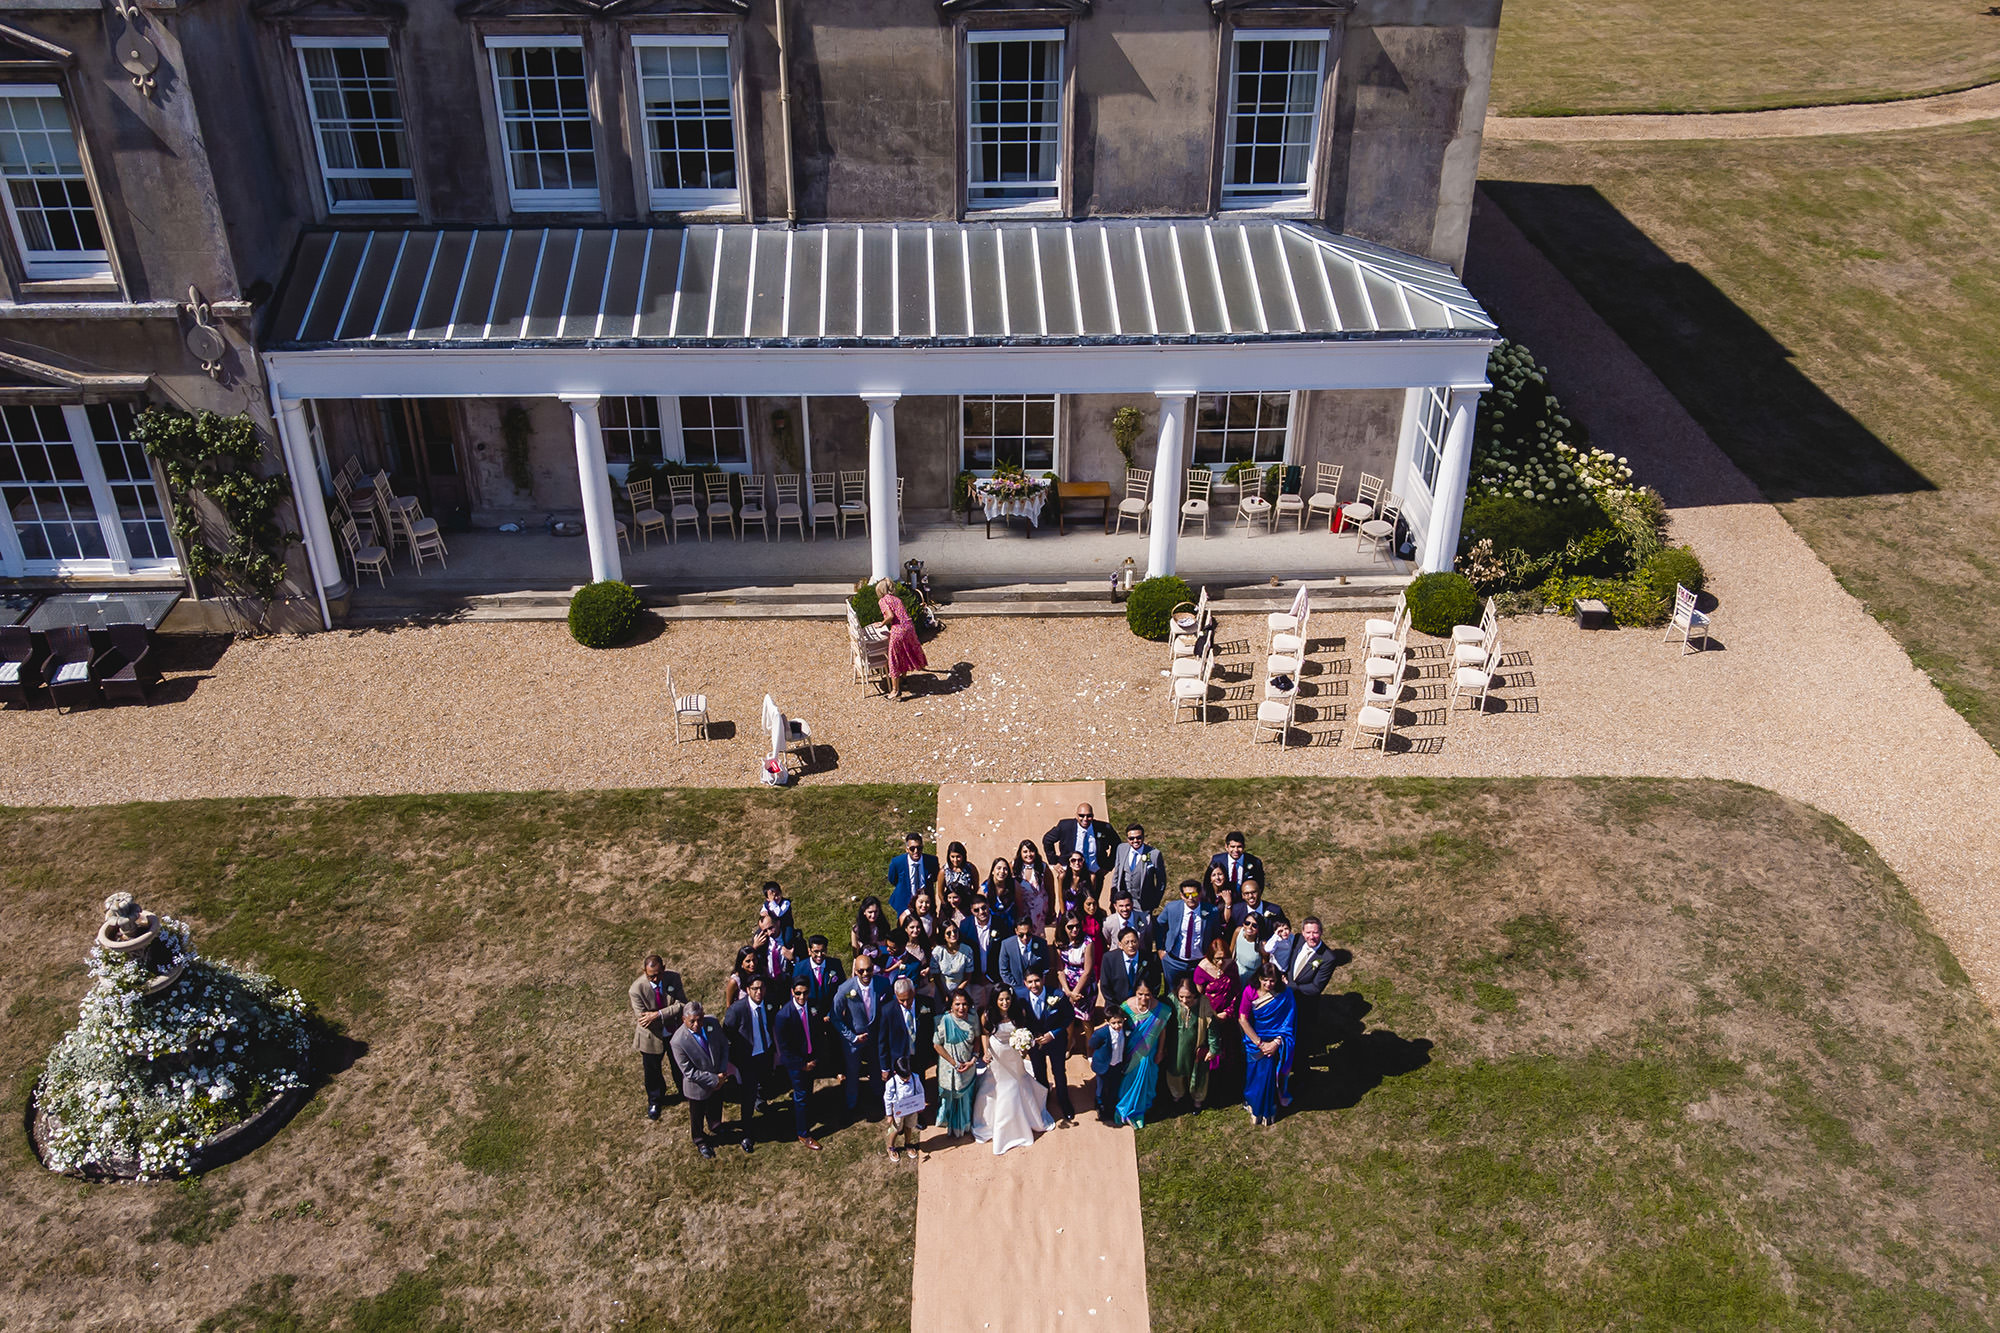 drone shot of all the guests at the civil ceremony with the venue behind them